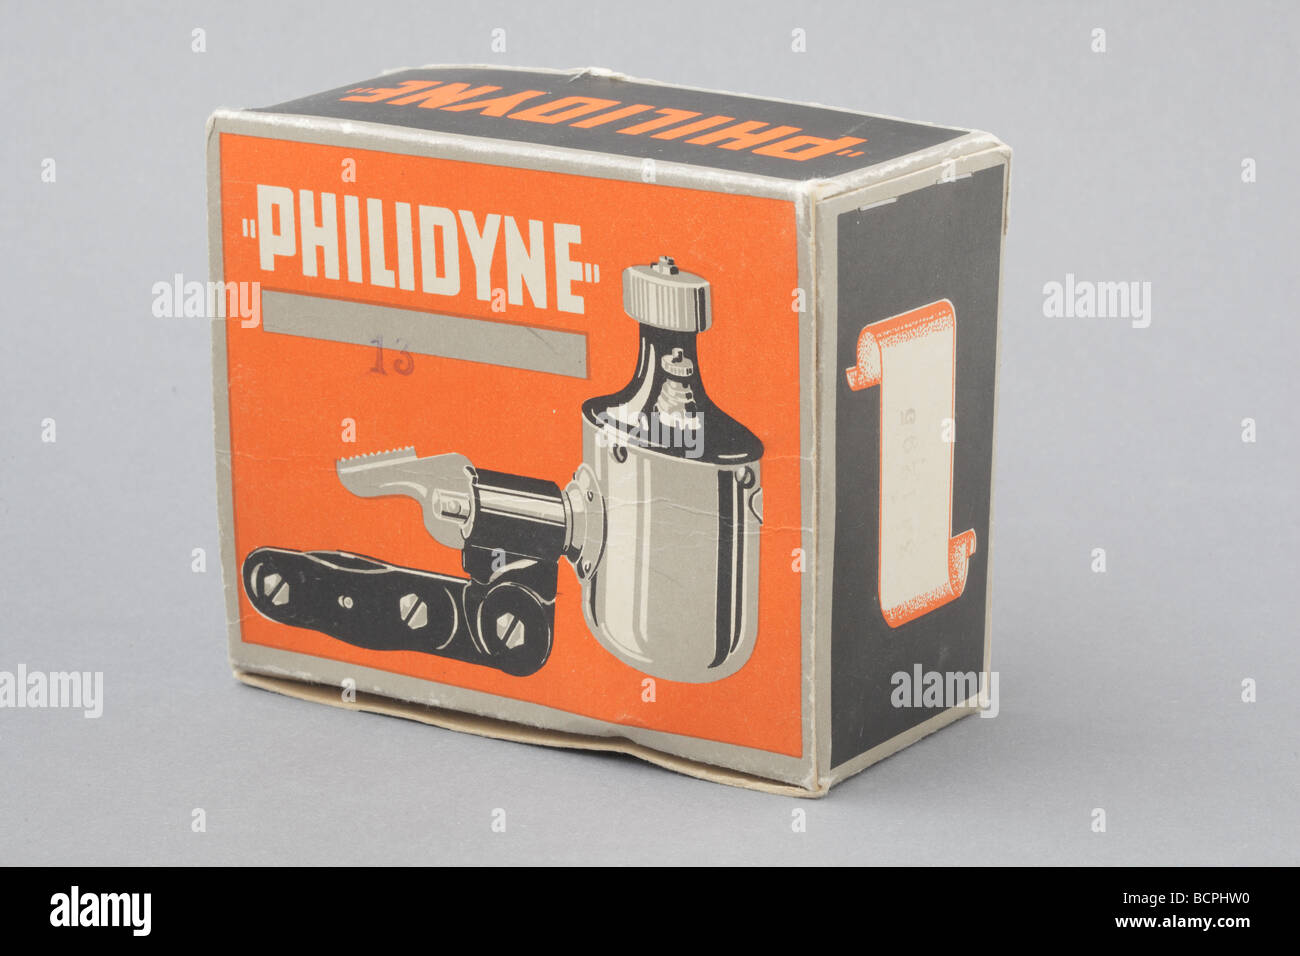 vintage philidyne dynamo cardboard box stock photo 25083212 alamy